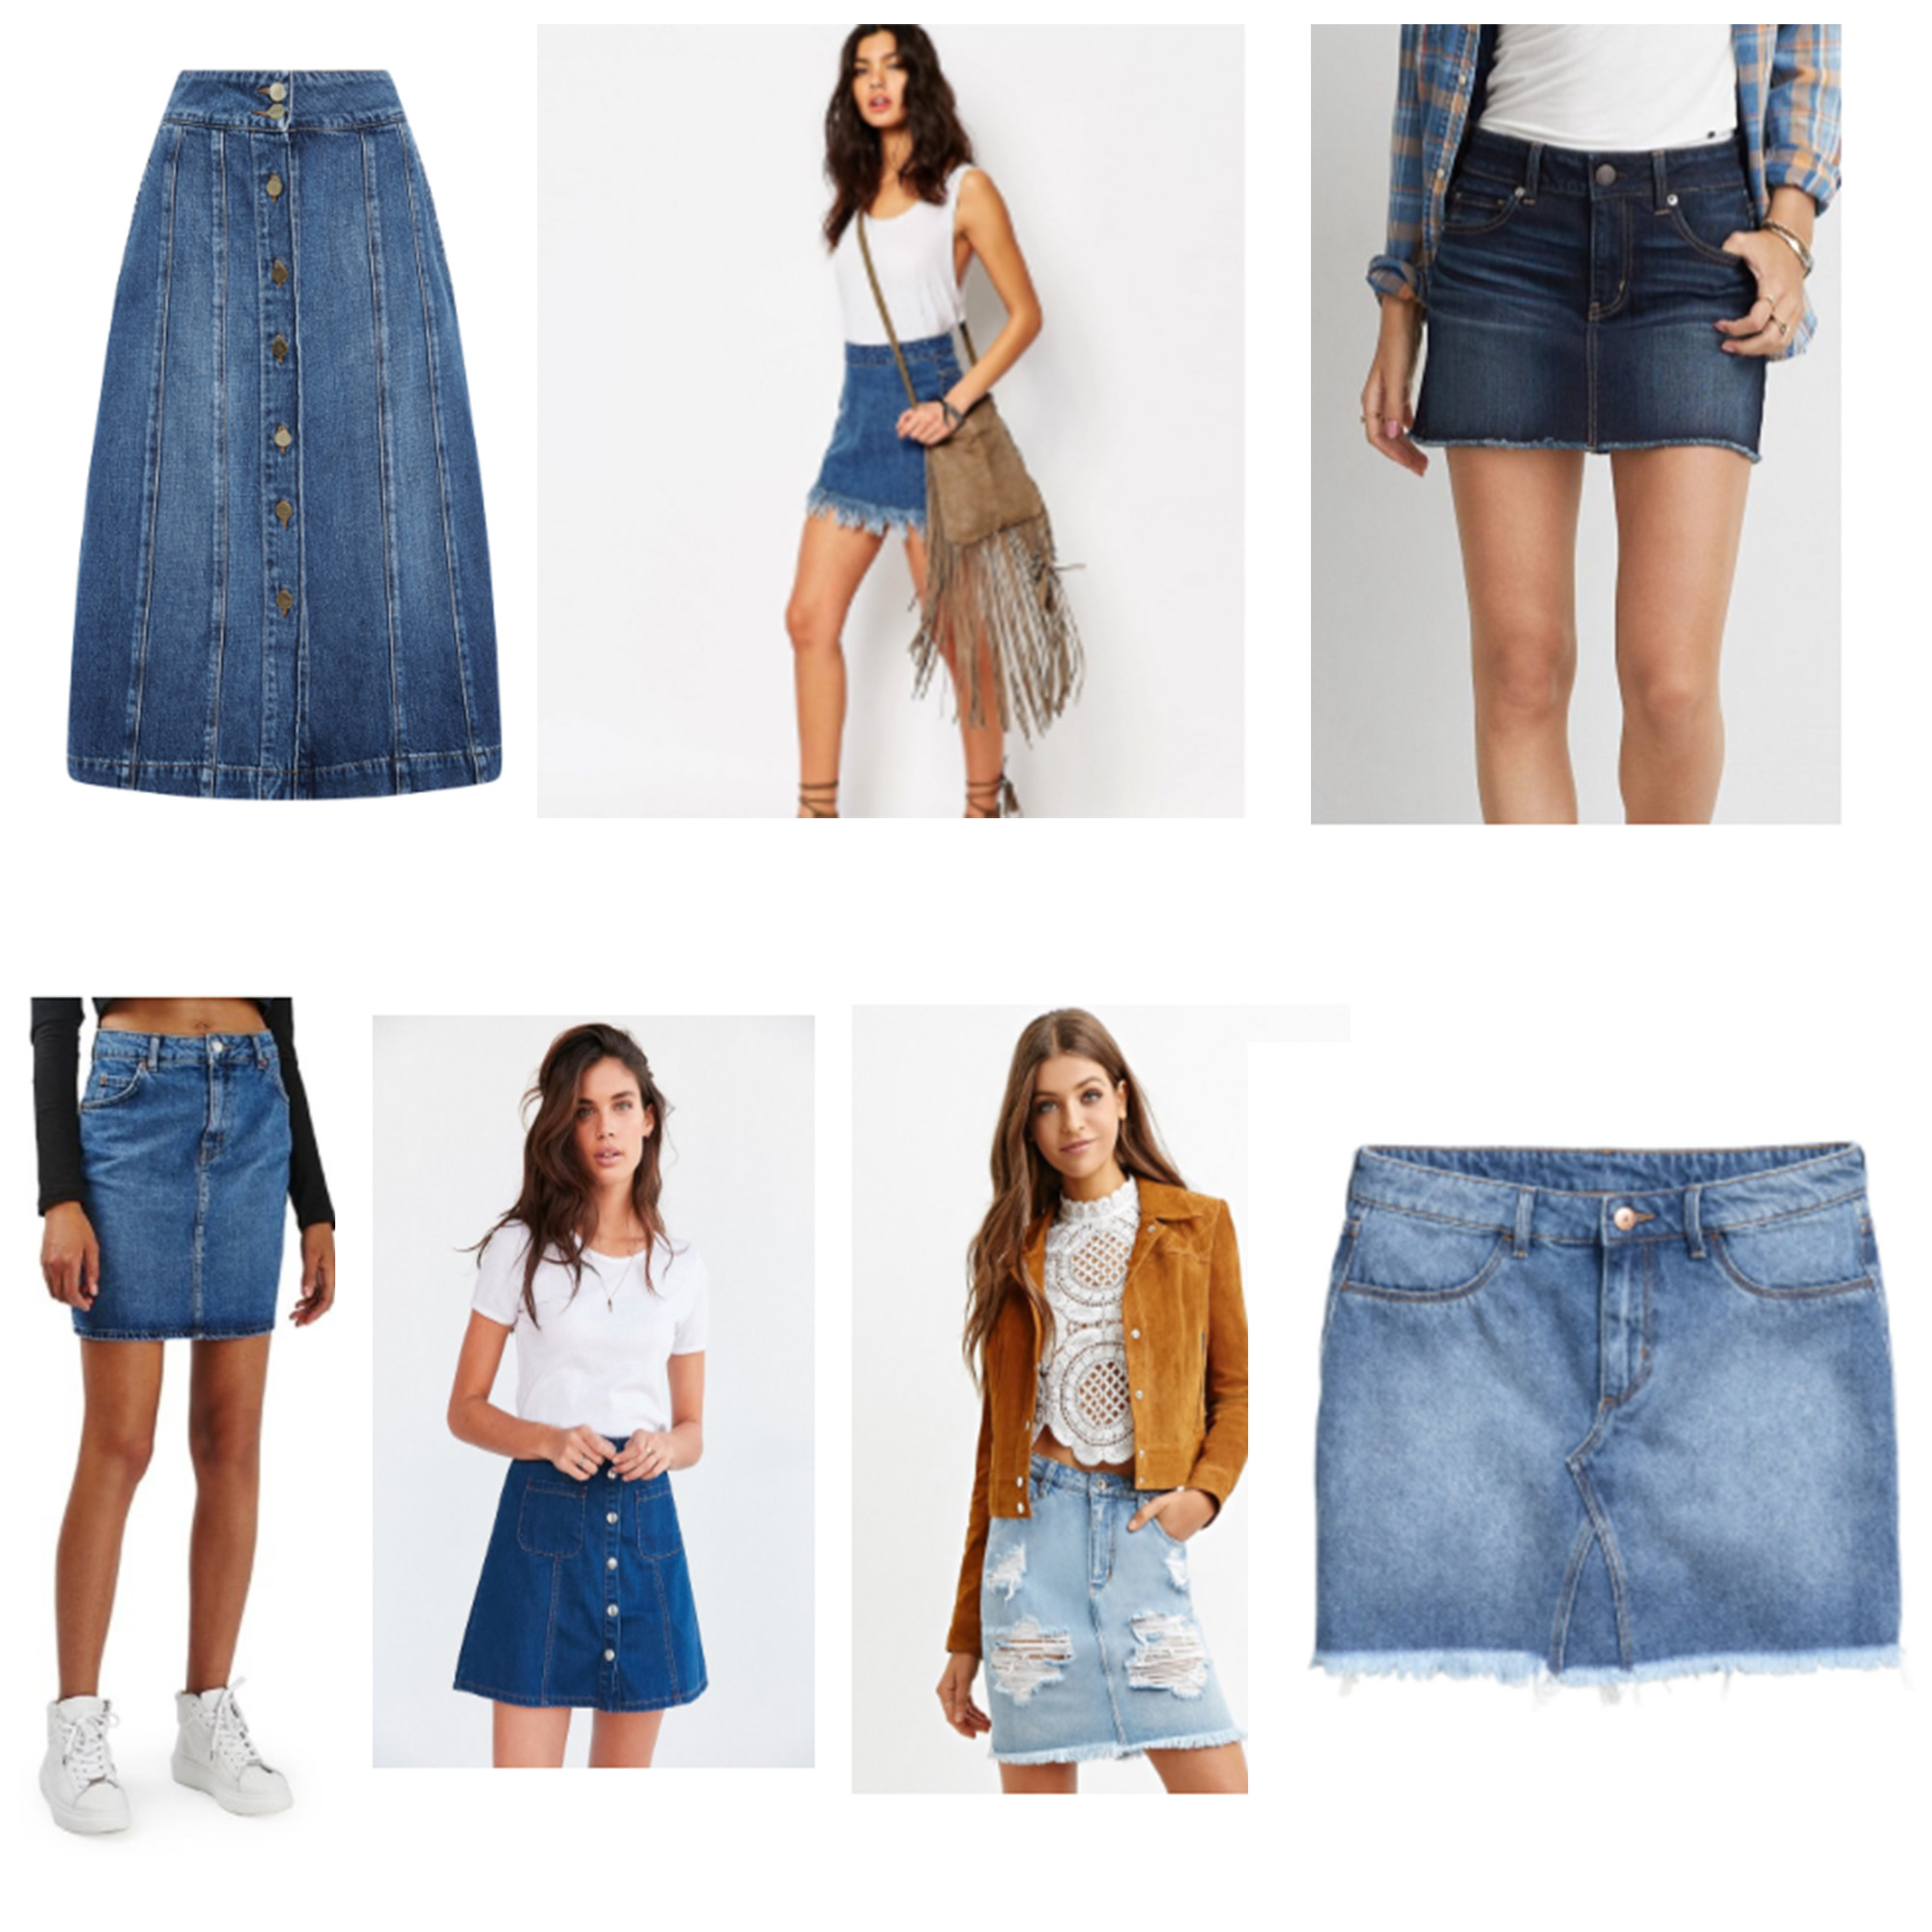 DenimSkirtCollage